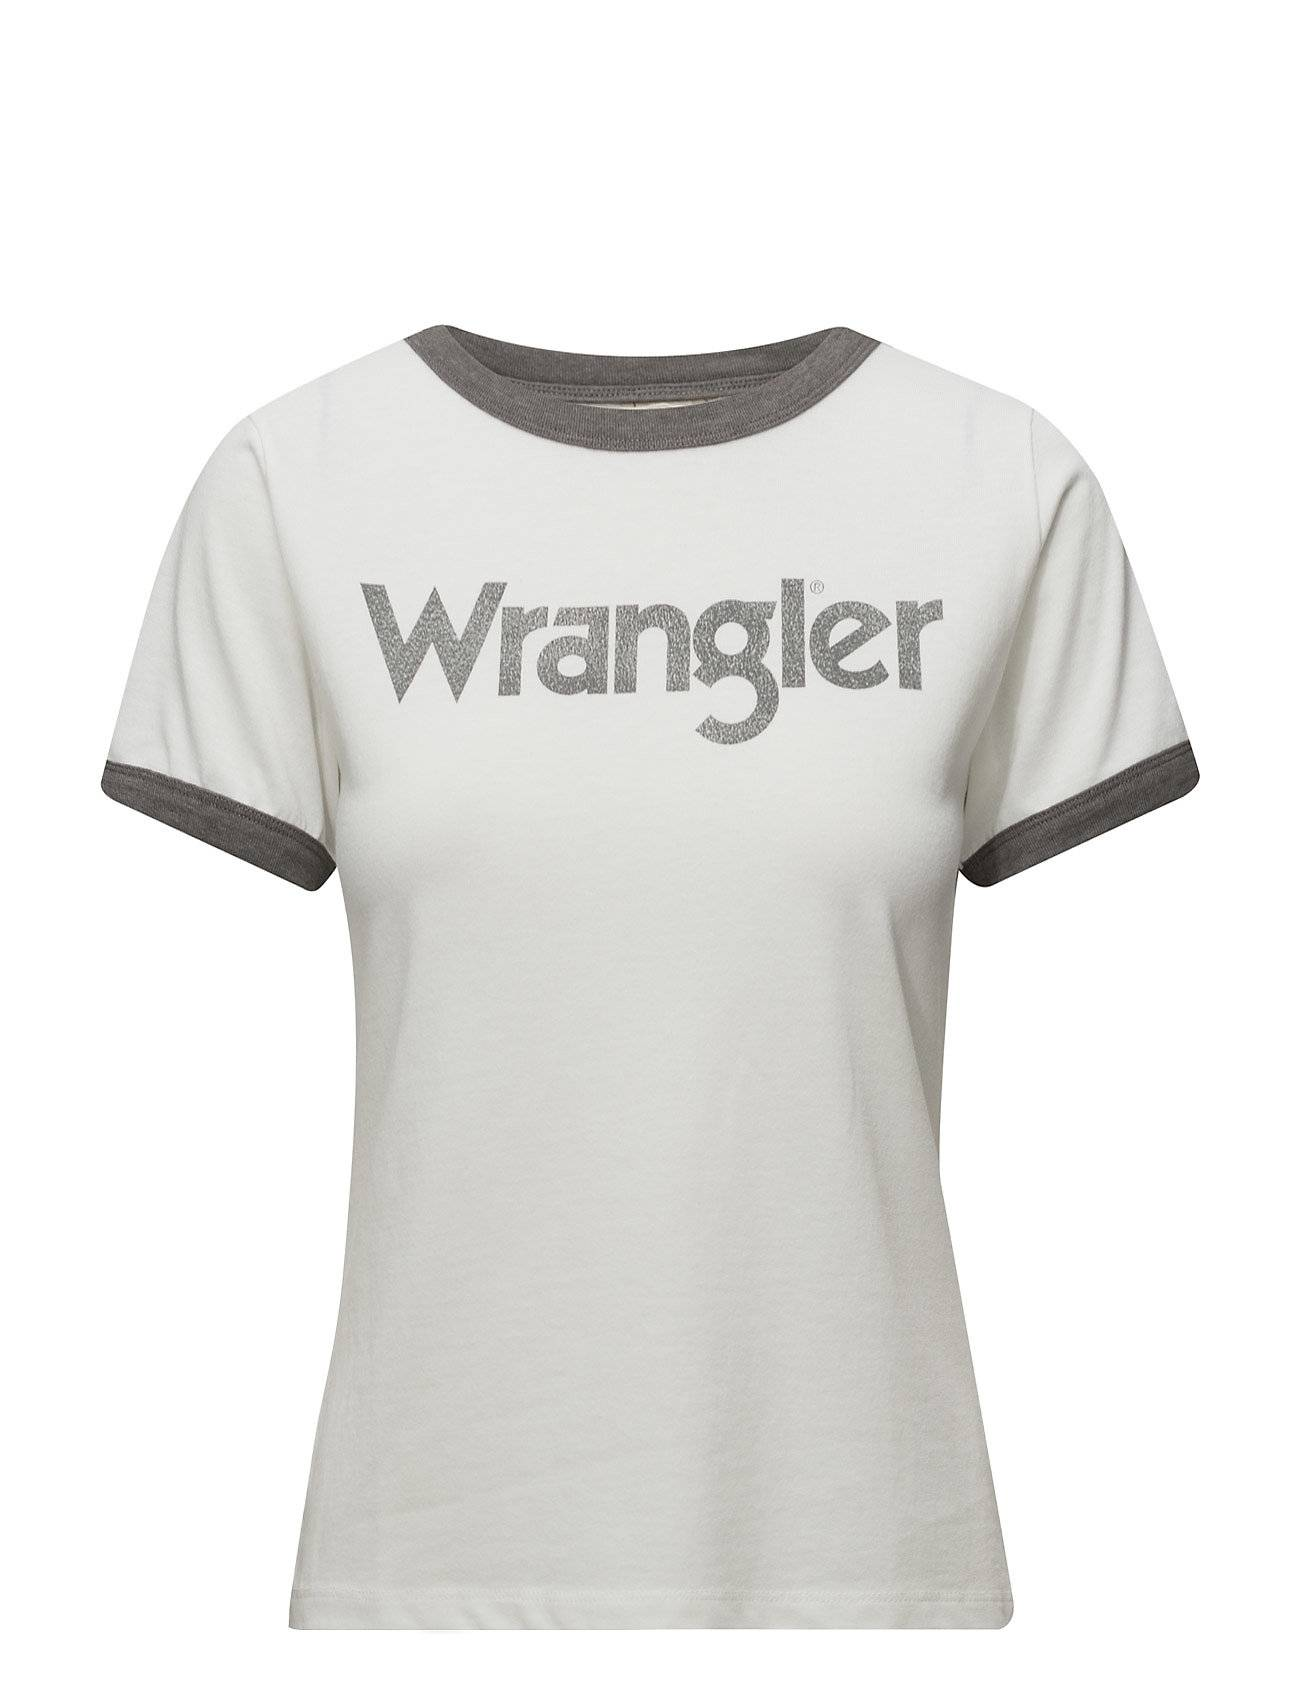 Wrangler Retro Kabel Tee Smoked Grey